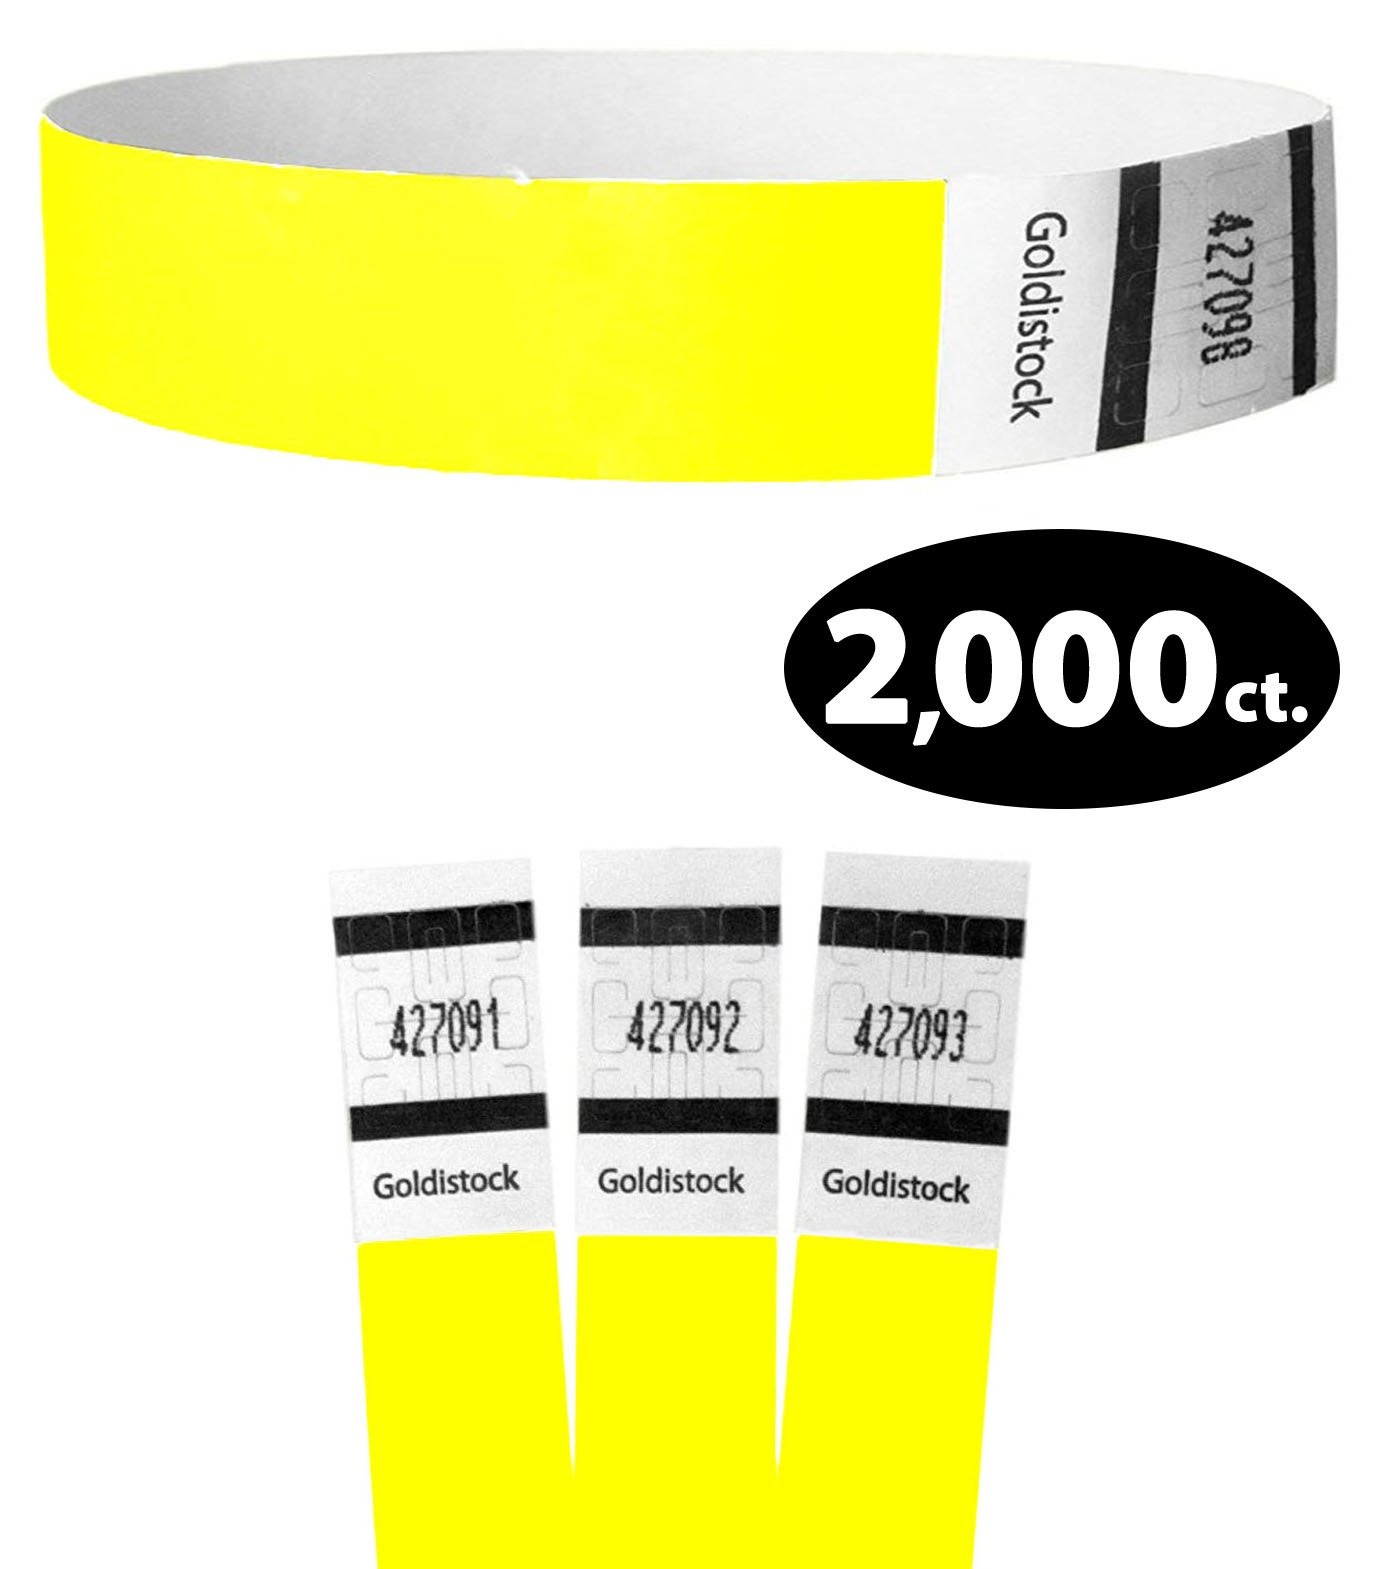 Tyvek Wristbands - Goldistock Original Series Vibrant Neon Yellow 2,000 Count - ¾'' Arm Bands - Paper-Like Party Armbands - Heavier Tyvek Wrist Bands = Upgrading Your Event by Goldistock